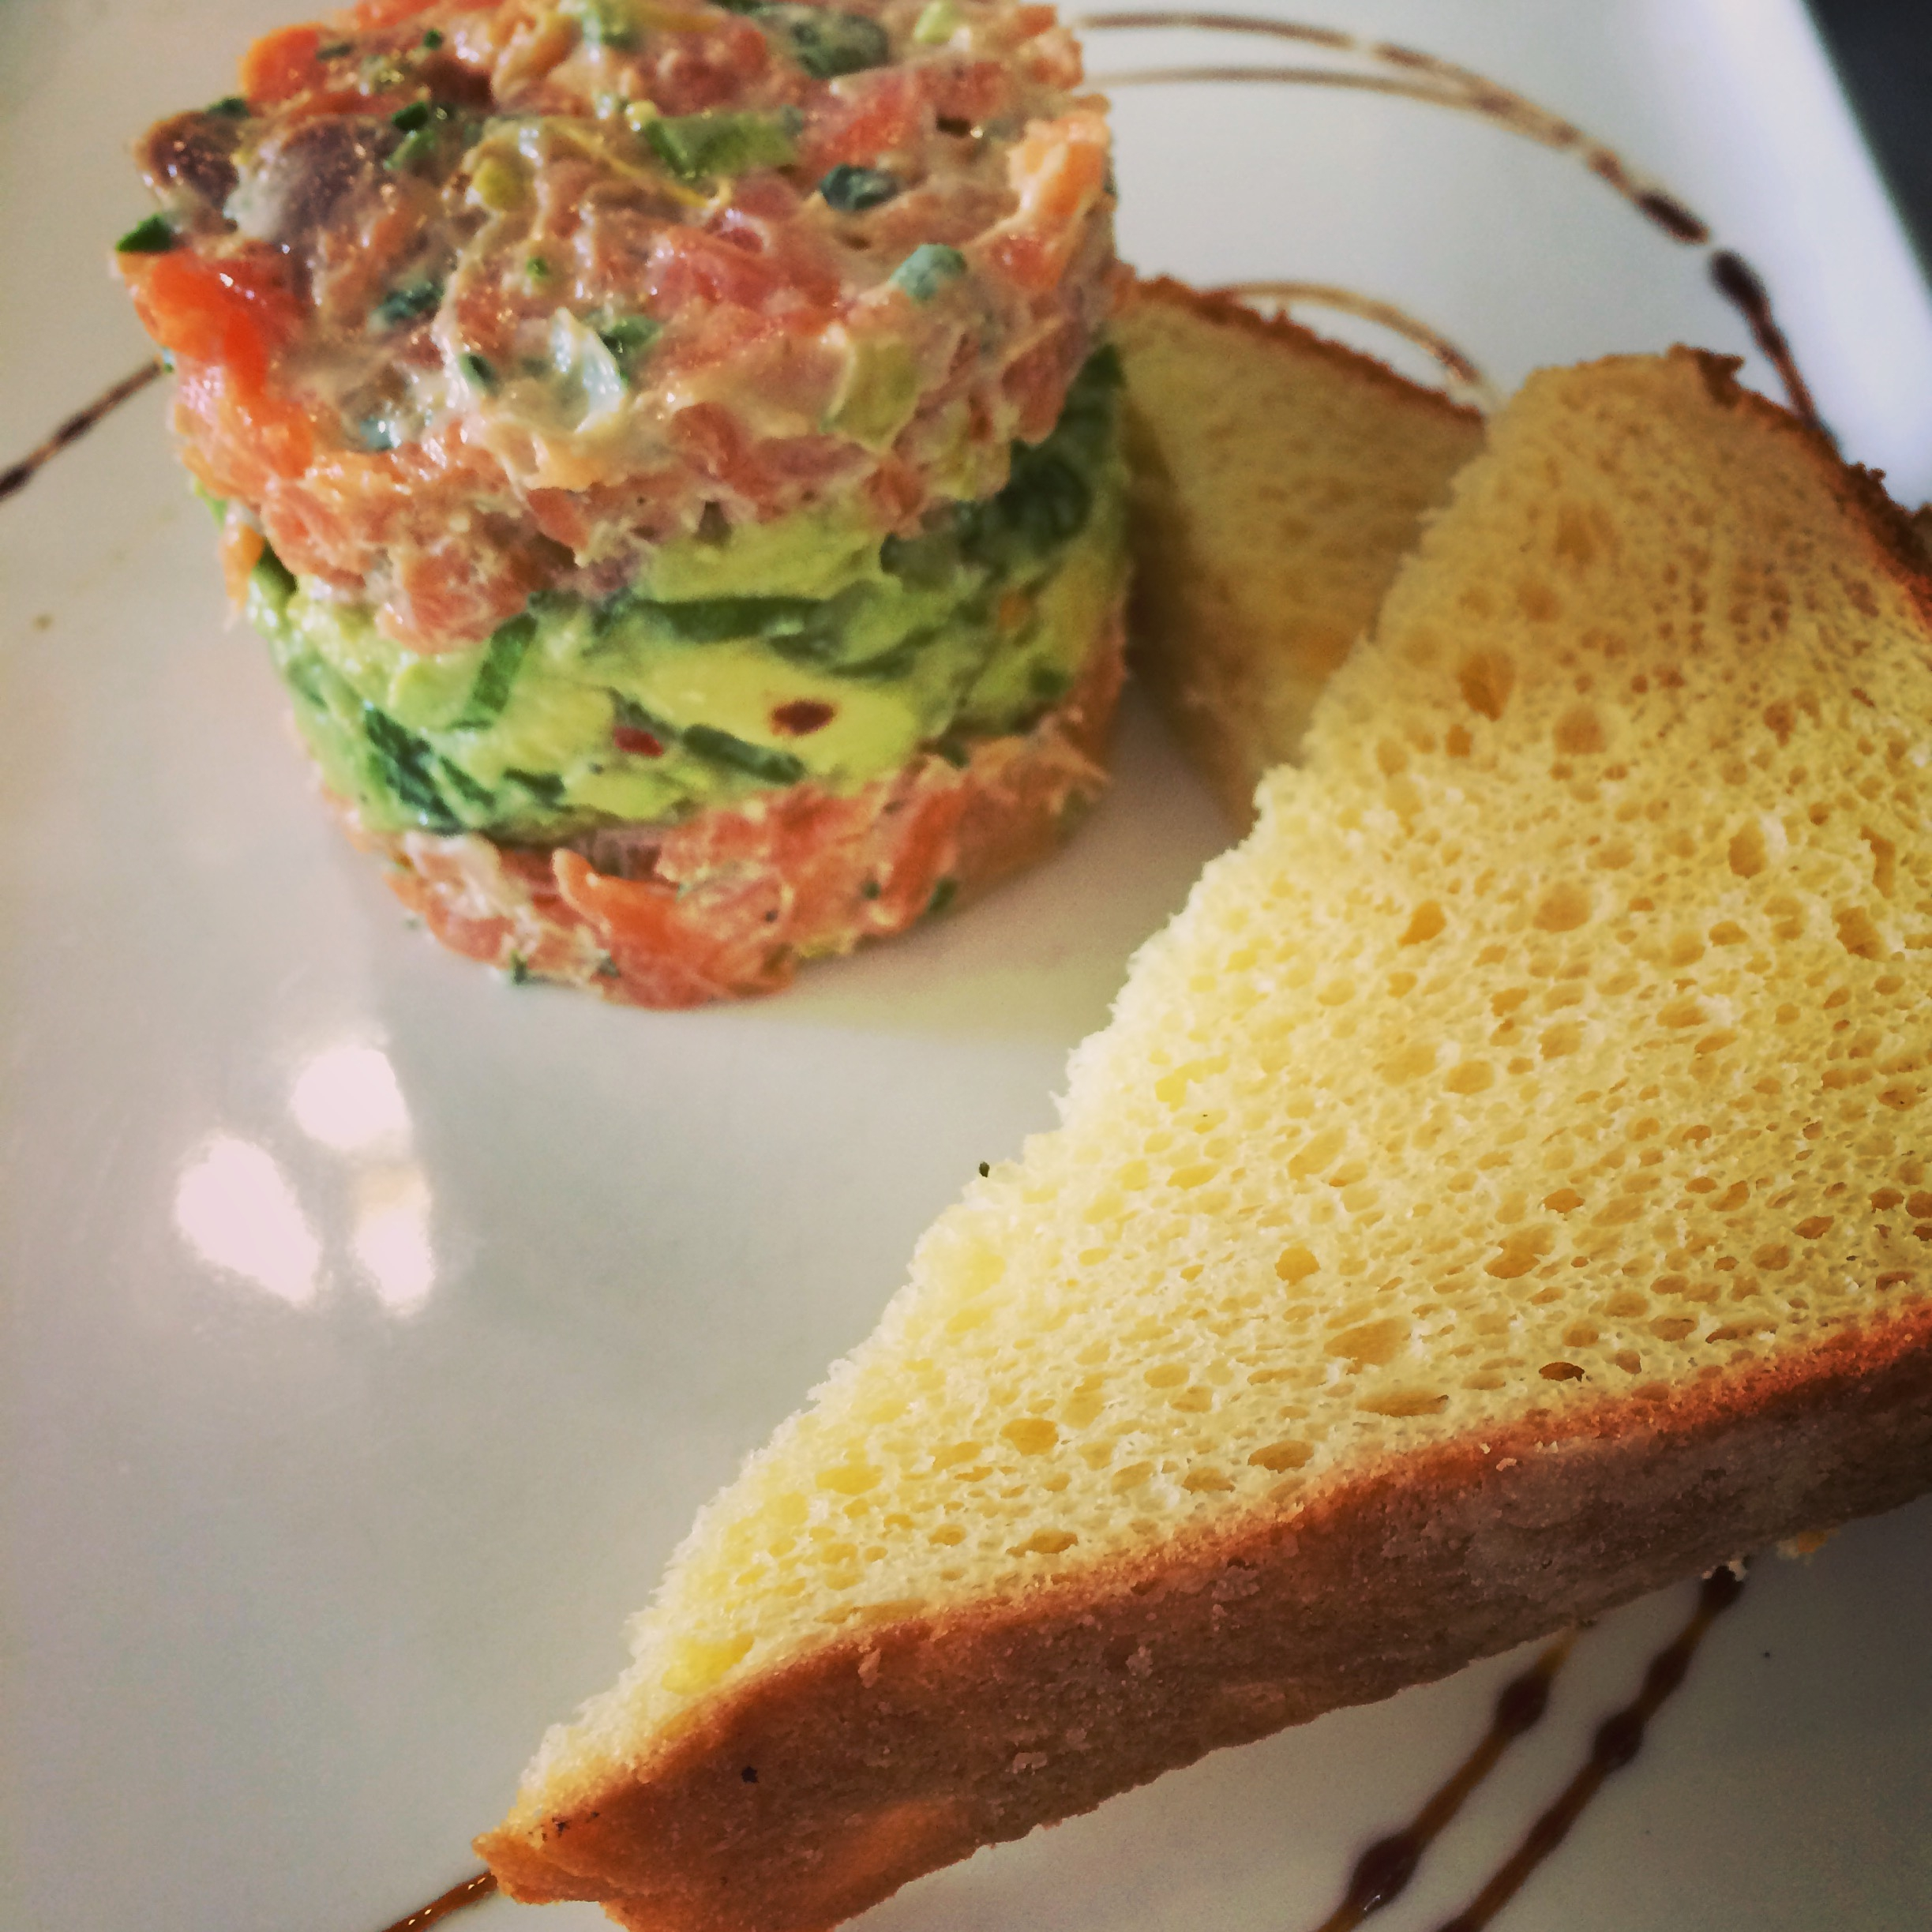 Salmon and avocado timbale at Rouge Cafe in Cambridge